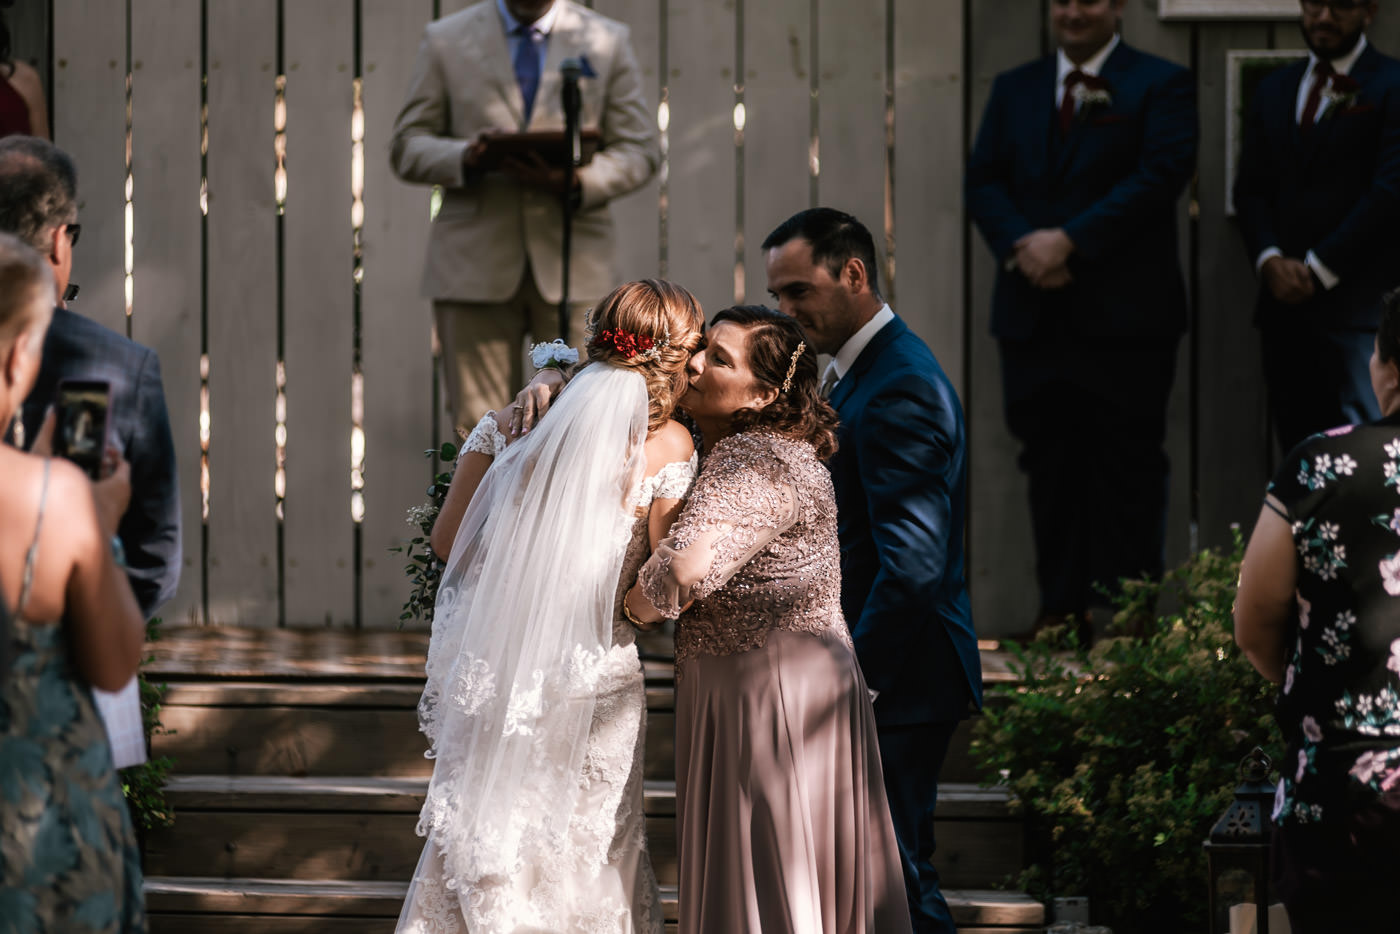 Emotional moment between a mother and daughter at this rustic wedding ceremony in Oak Glen.